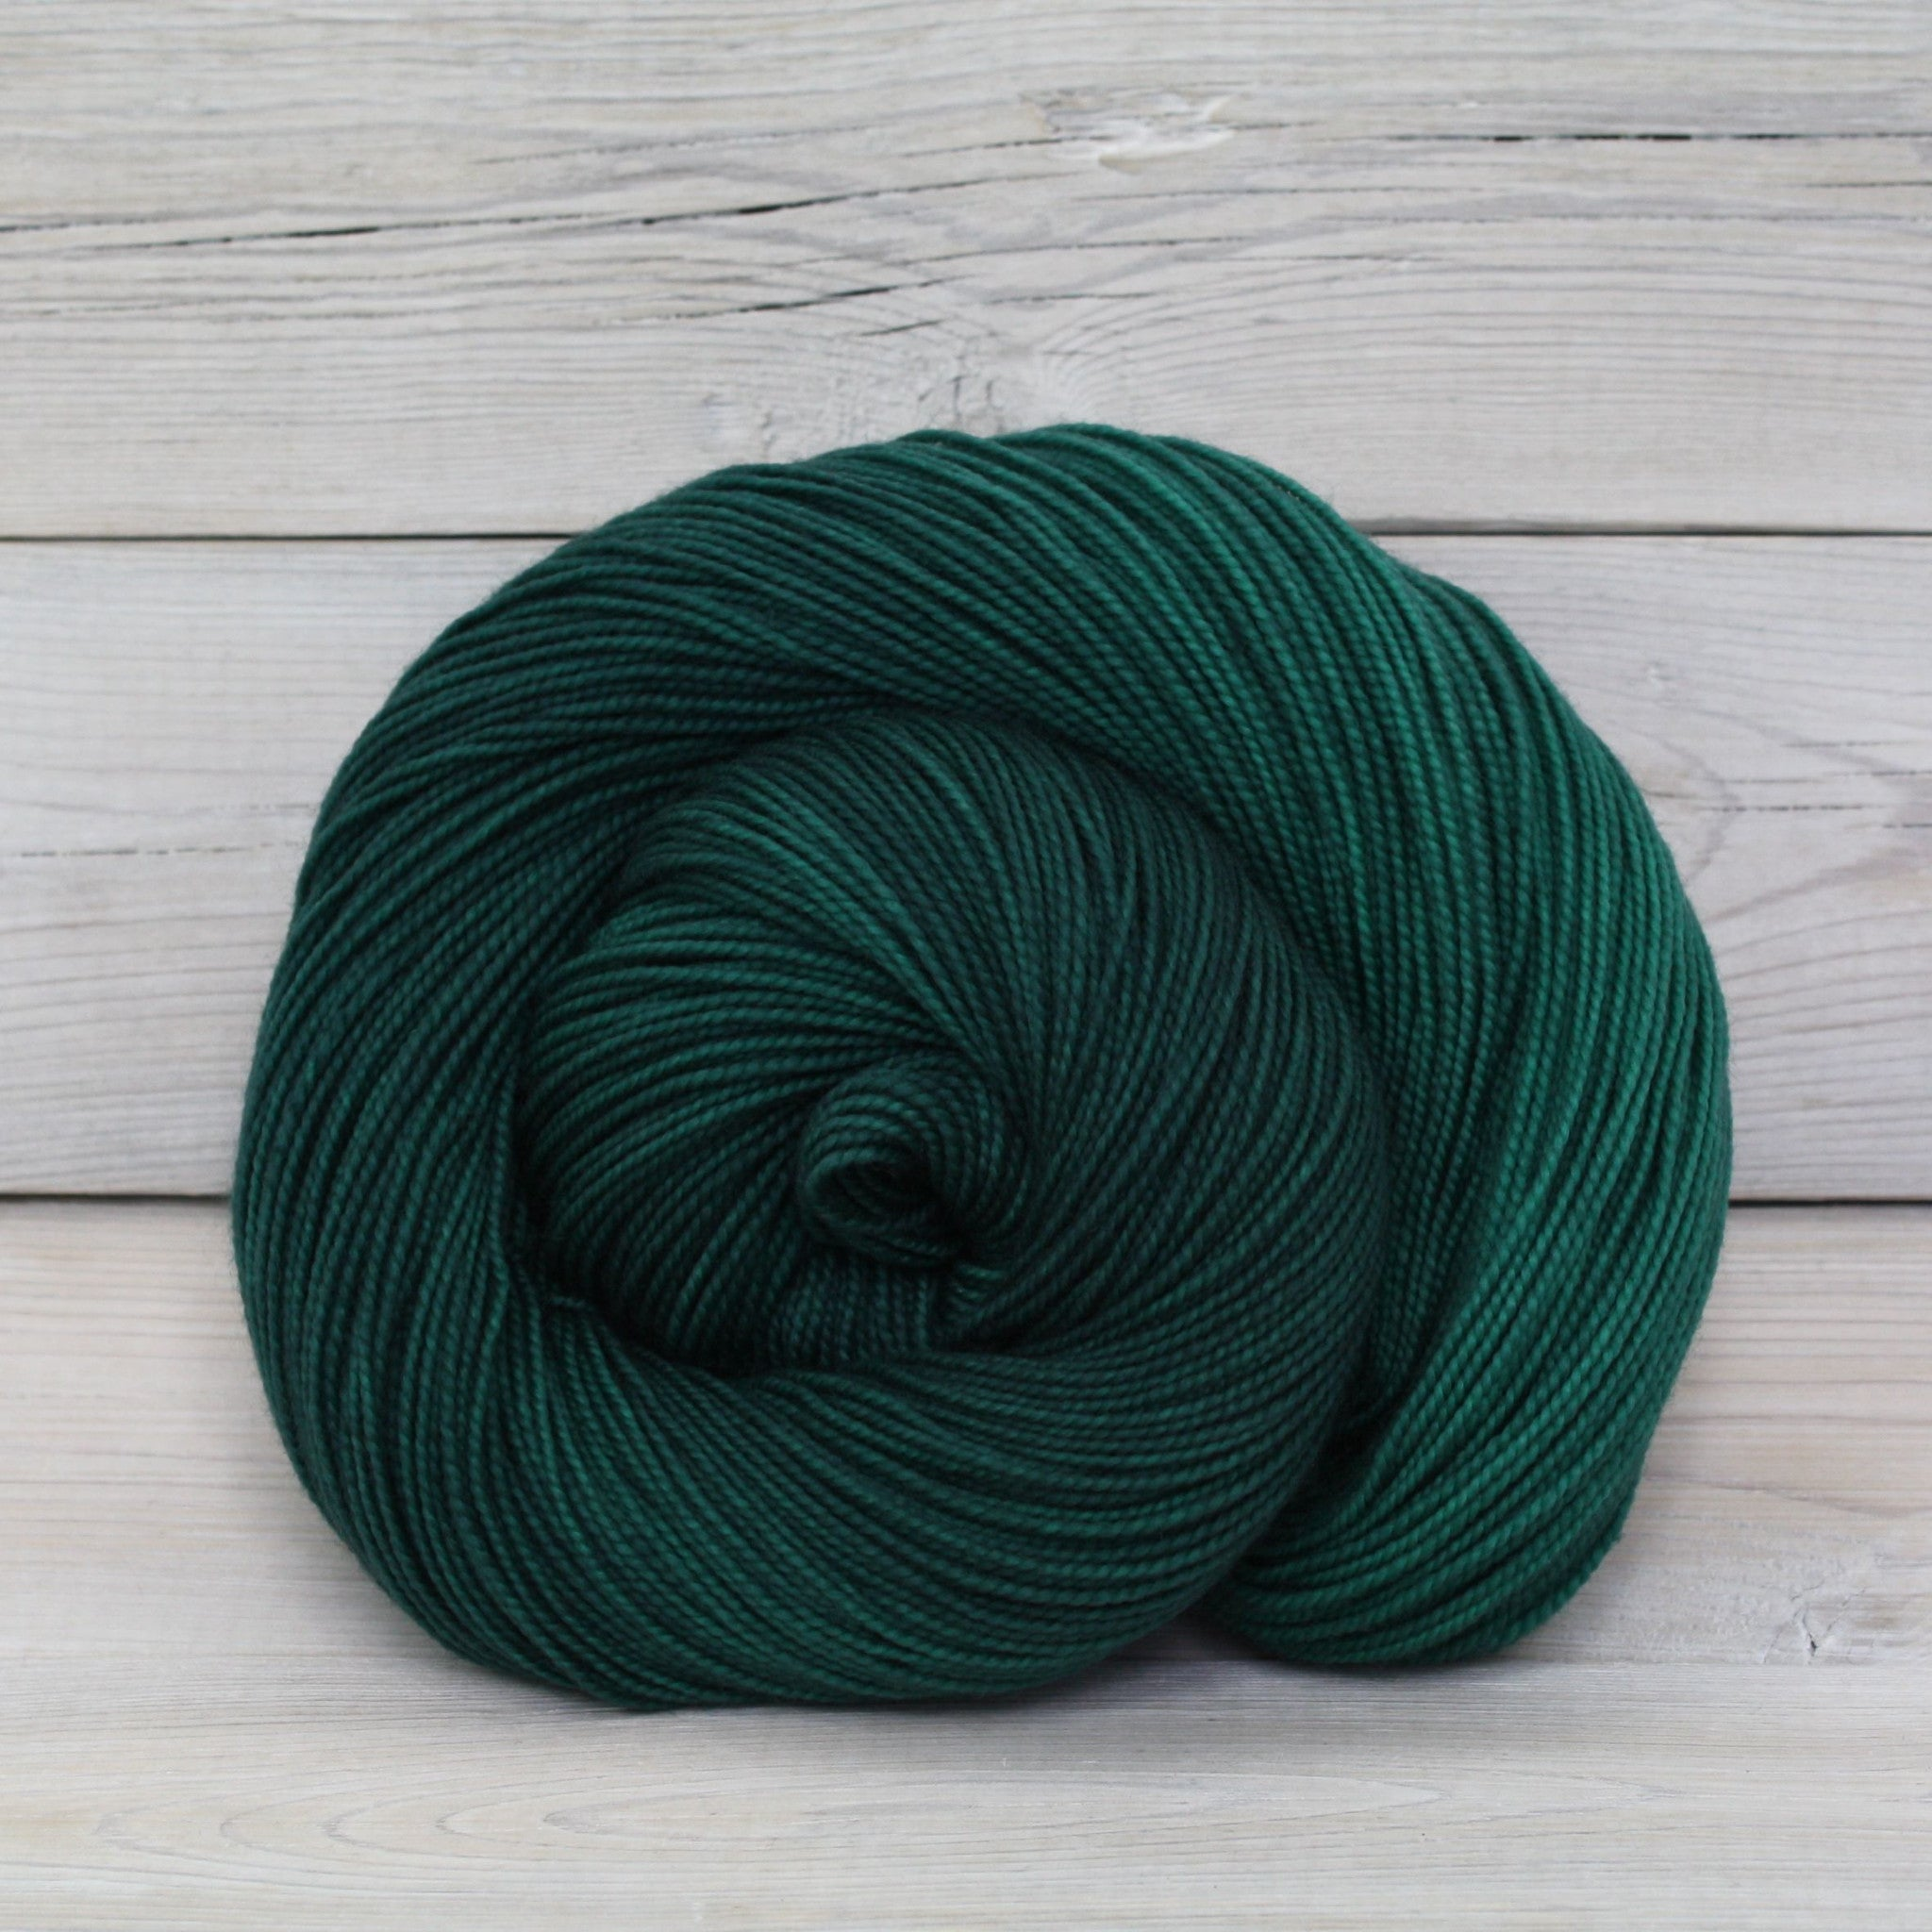 Luna Grey Fiber Arts Celeste Yarn | Colorway: Emerald